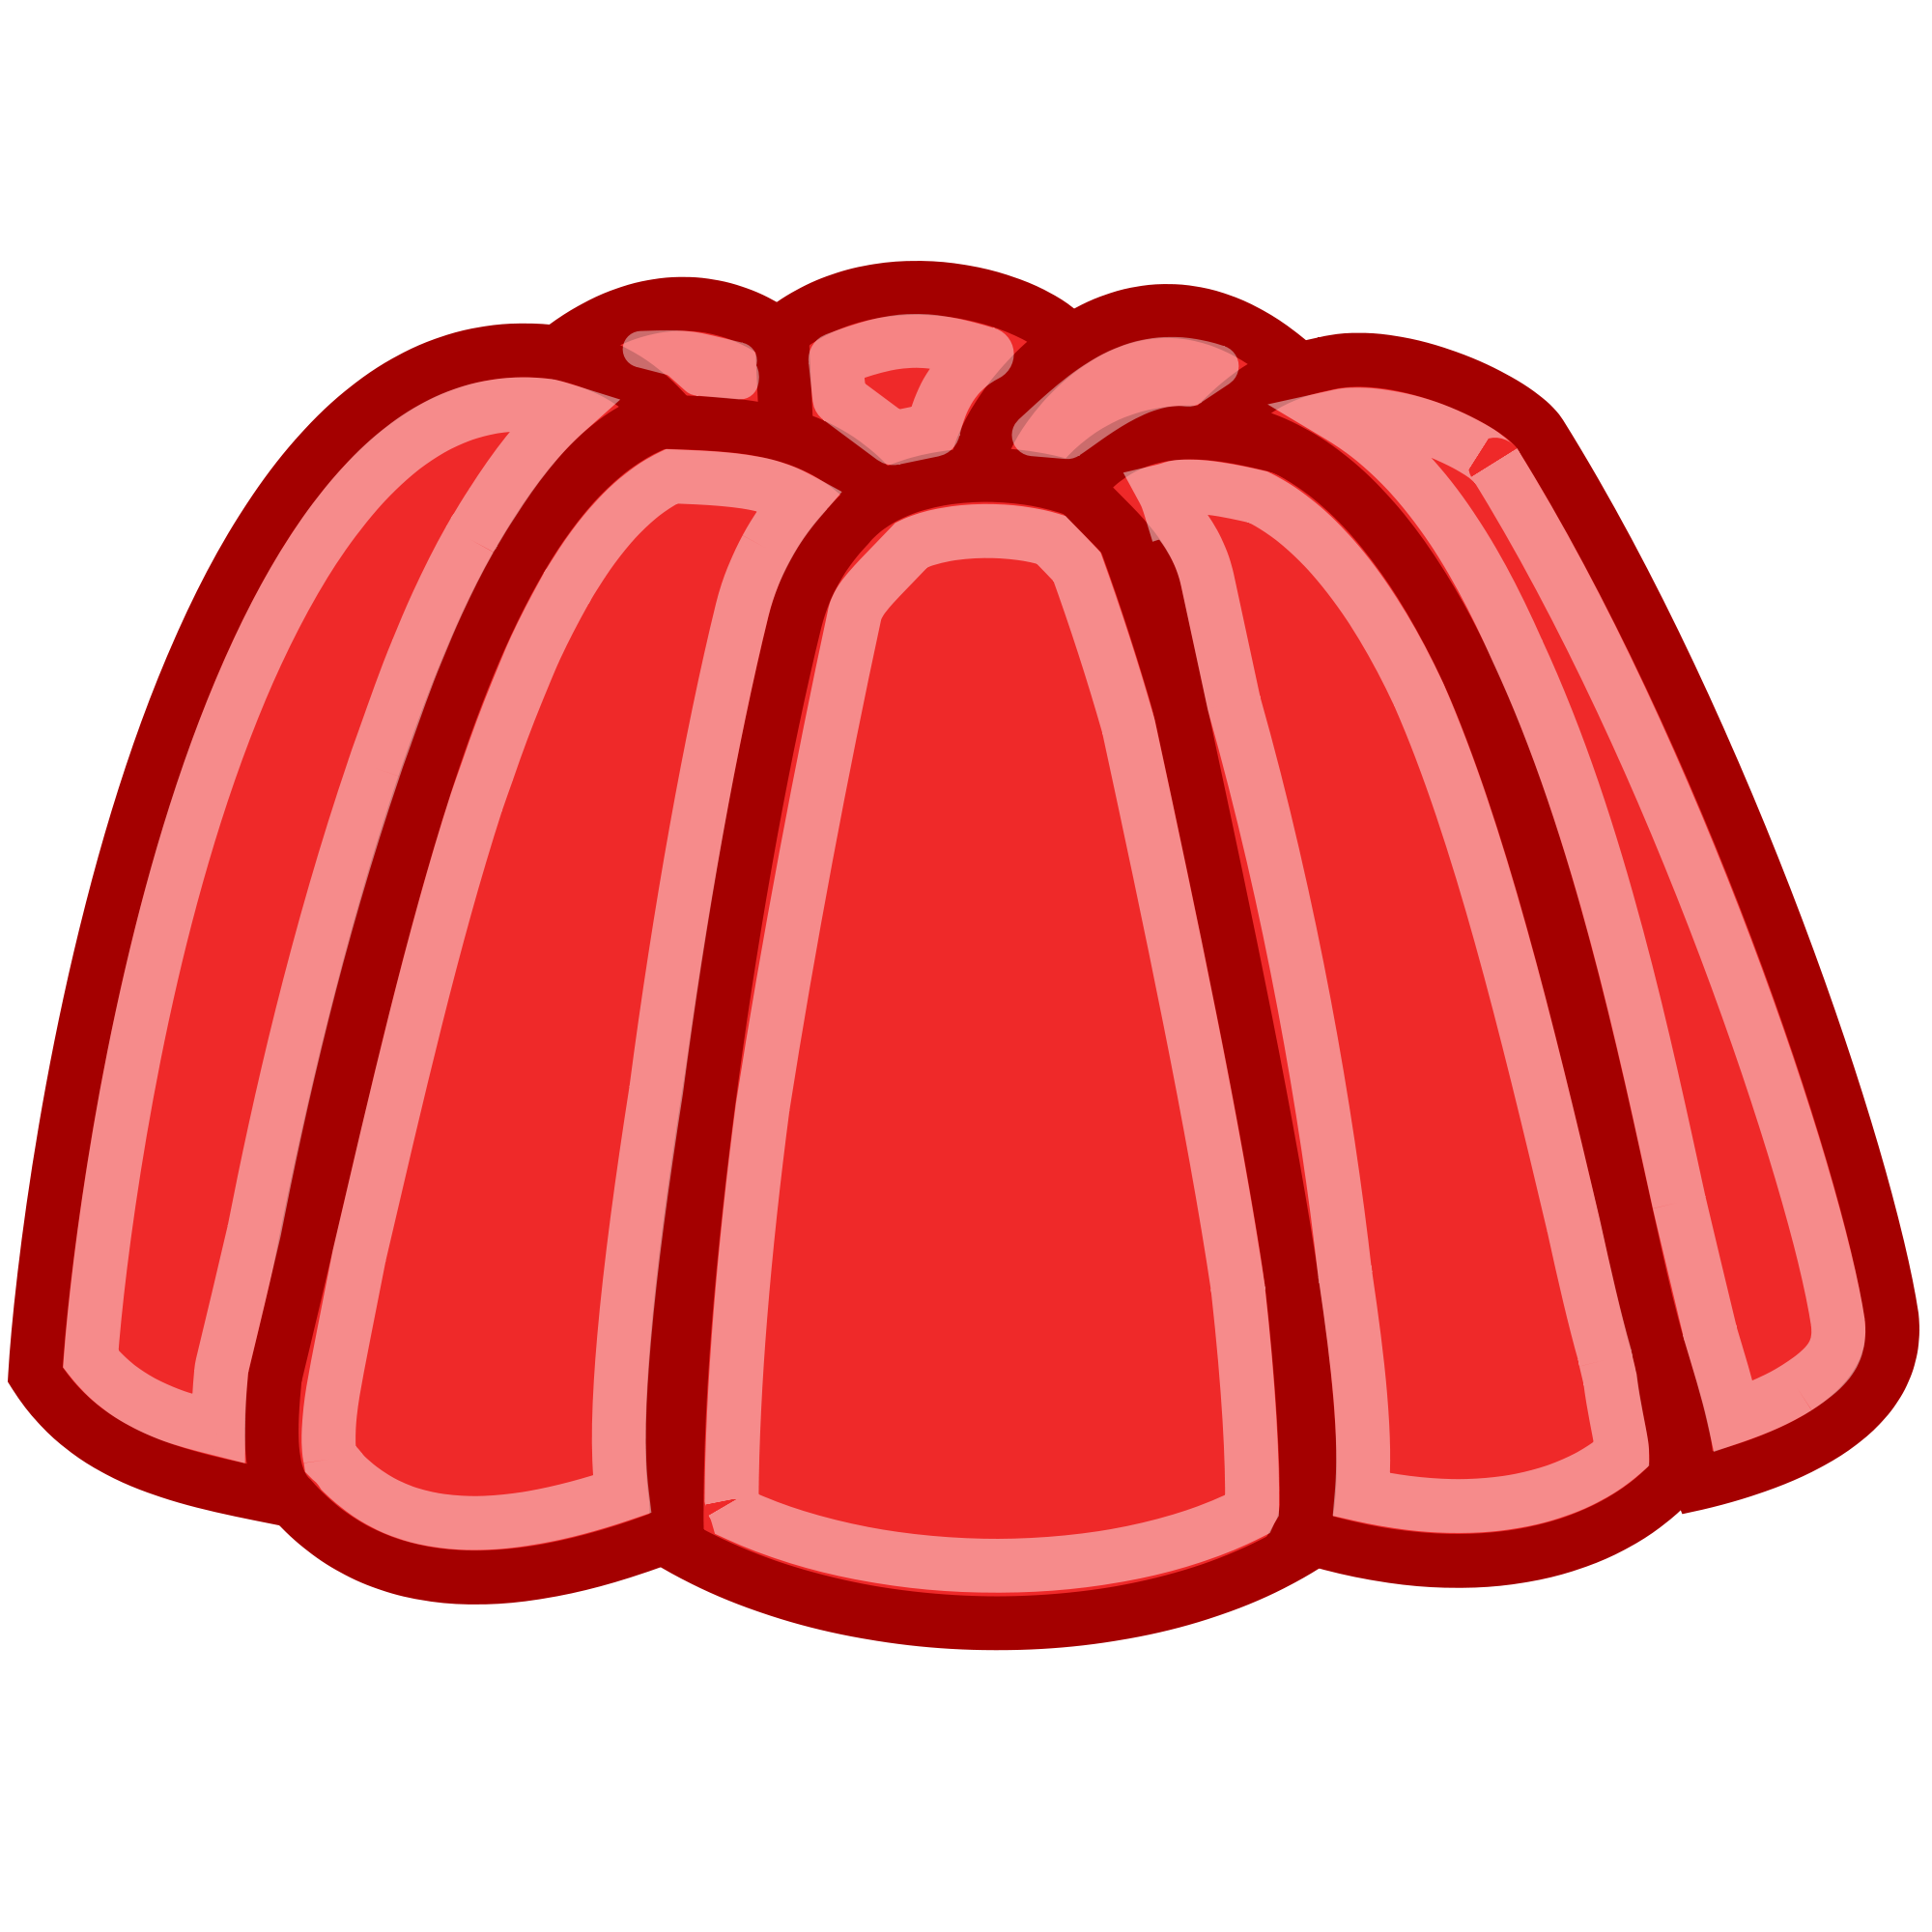 Jelly svg #19, Download drawings